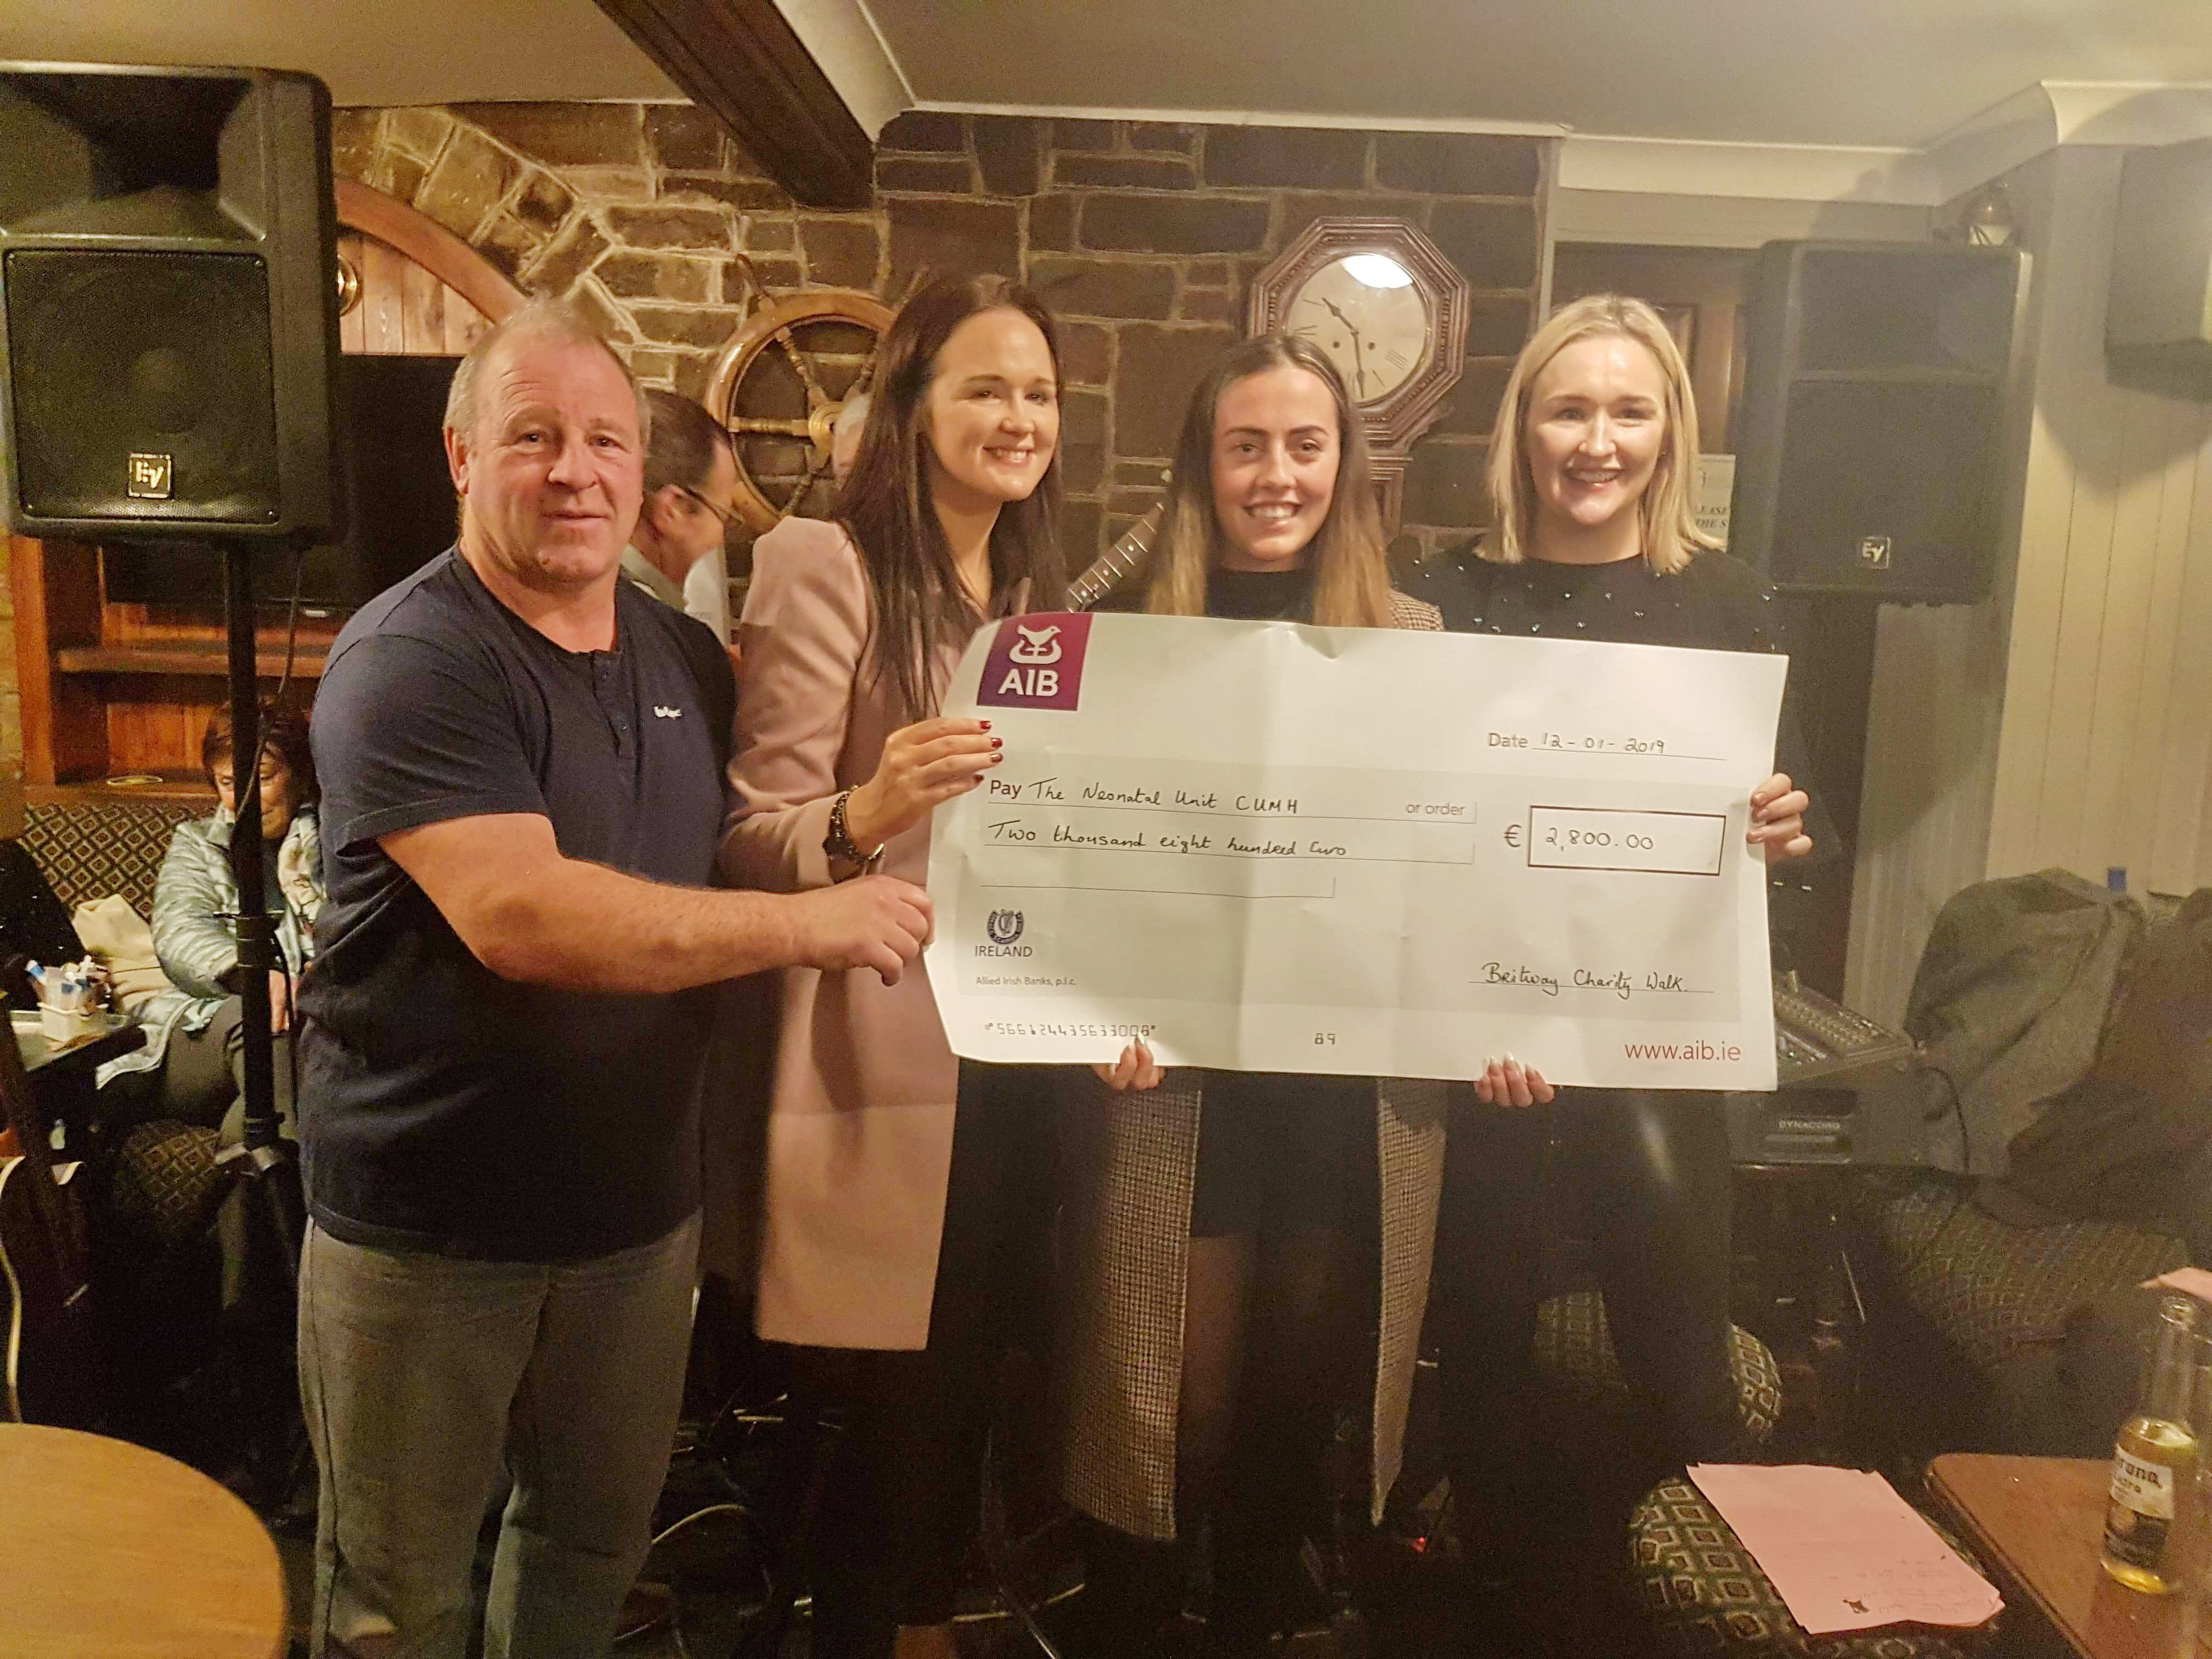 Presentation of Cheque to Cork University Hospital Neonatal Unit and